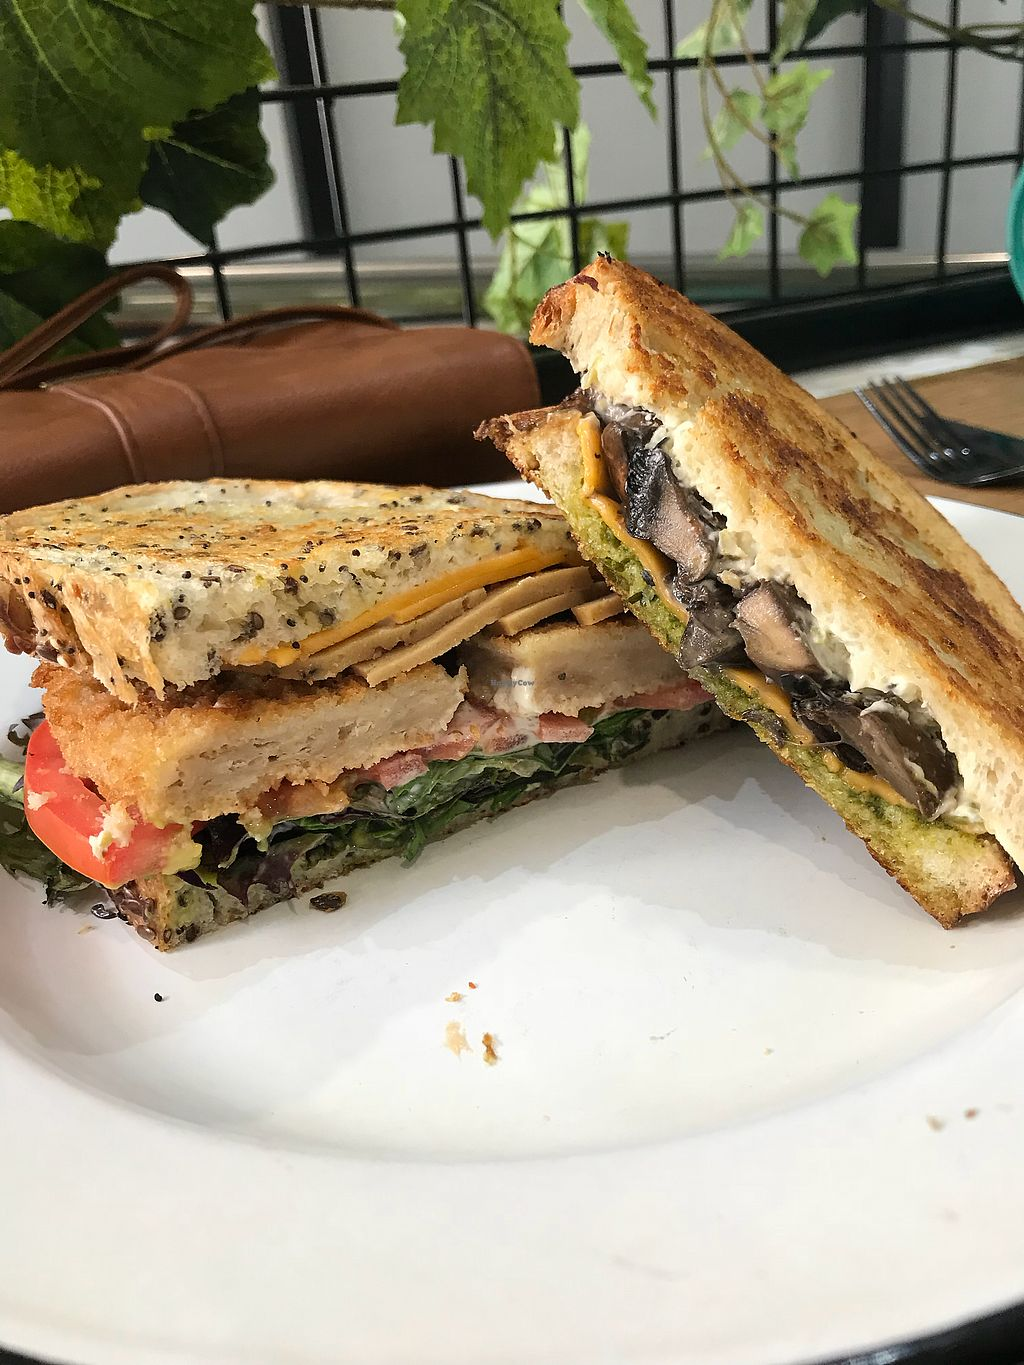 "Photo of Shift Eatery  by <a href=""/members/profile/dazedkiwi"">dazedkiwi</a> <br/>Club sandwich & shroom toastie  <br/> March 31, 2018  - <a href='/contact/abuse/image/101383/378675'>Report</a>"